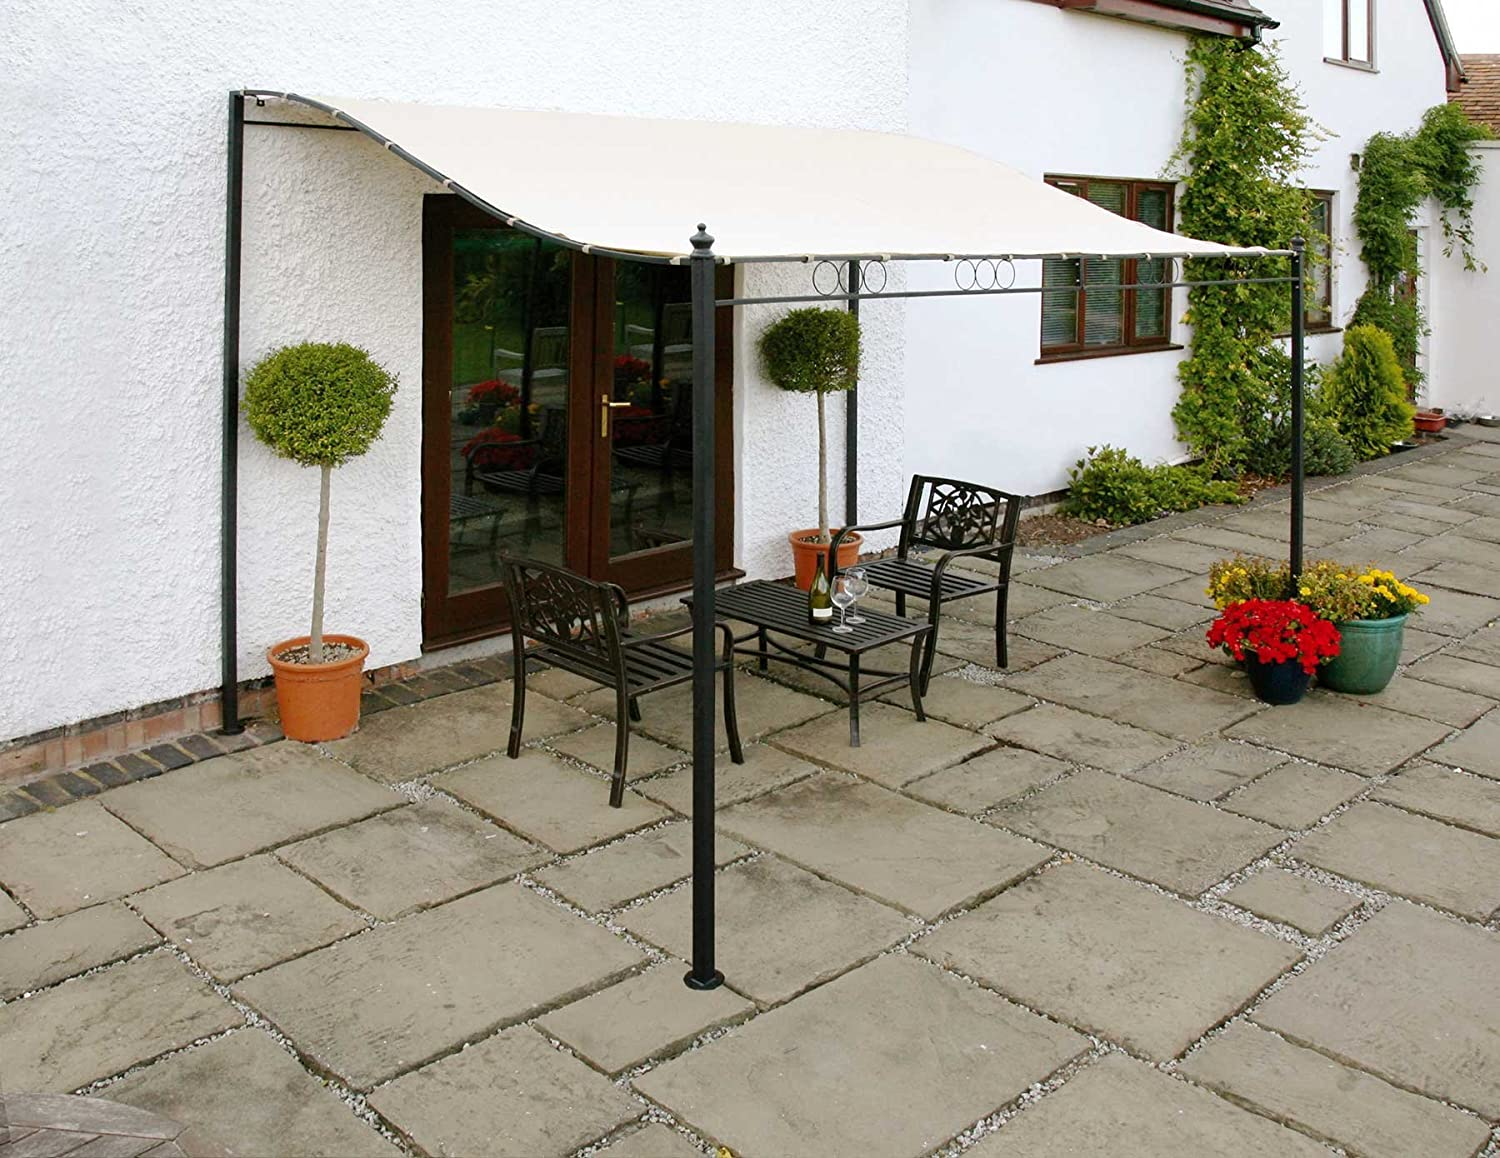 Wall Mounted Canopy Gazebo 3 Metre Easy Fit Sunshade Awning For Patio Decking Terrace Removeable Canopy Cover walford